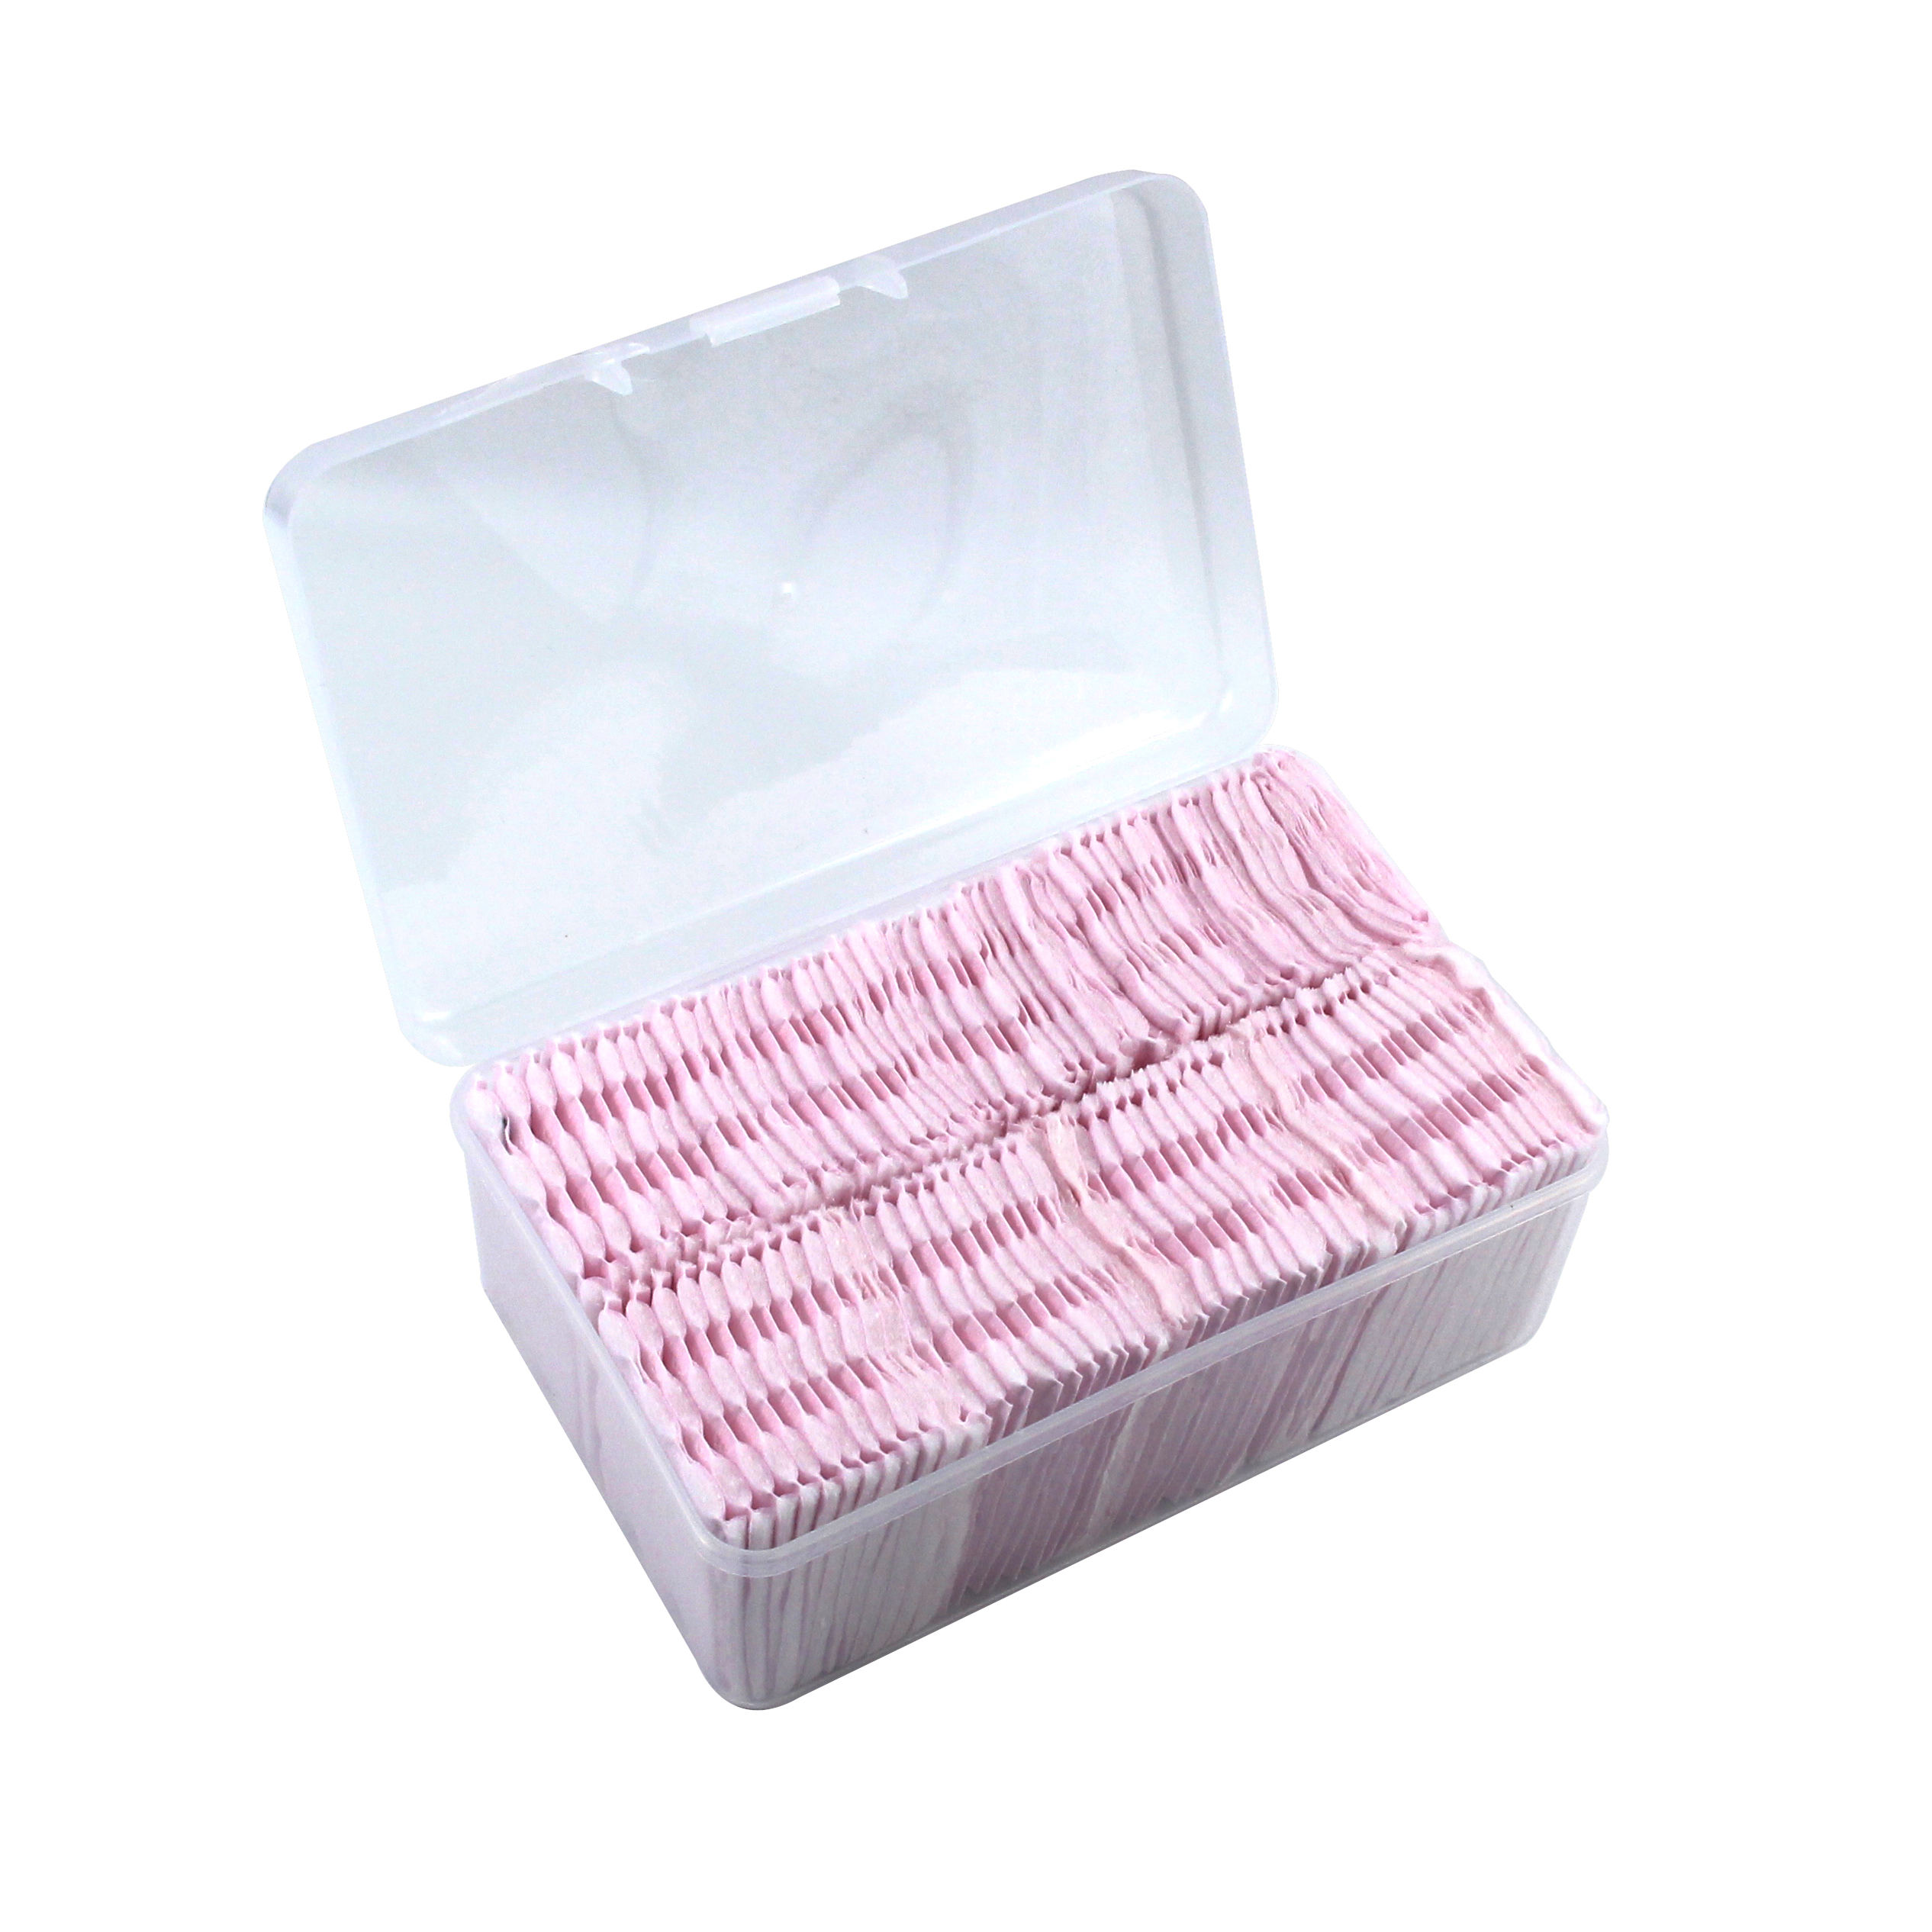 Eco-Friendly Make-Up Facial Cotton Pads For Cosmetic Use Pink Color